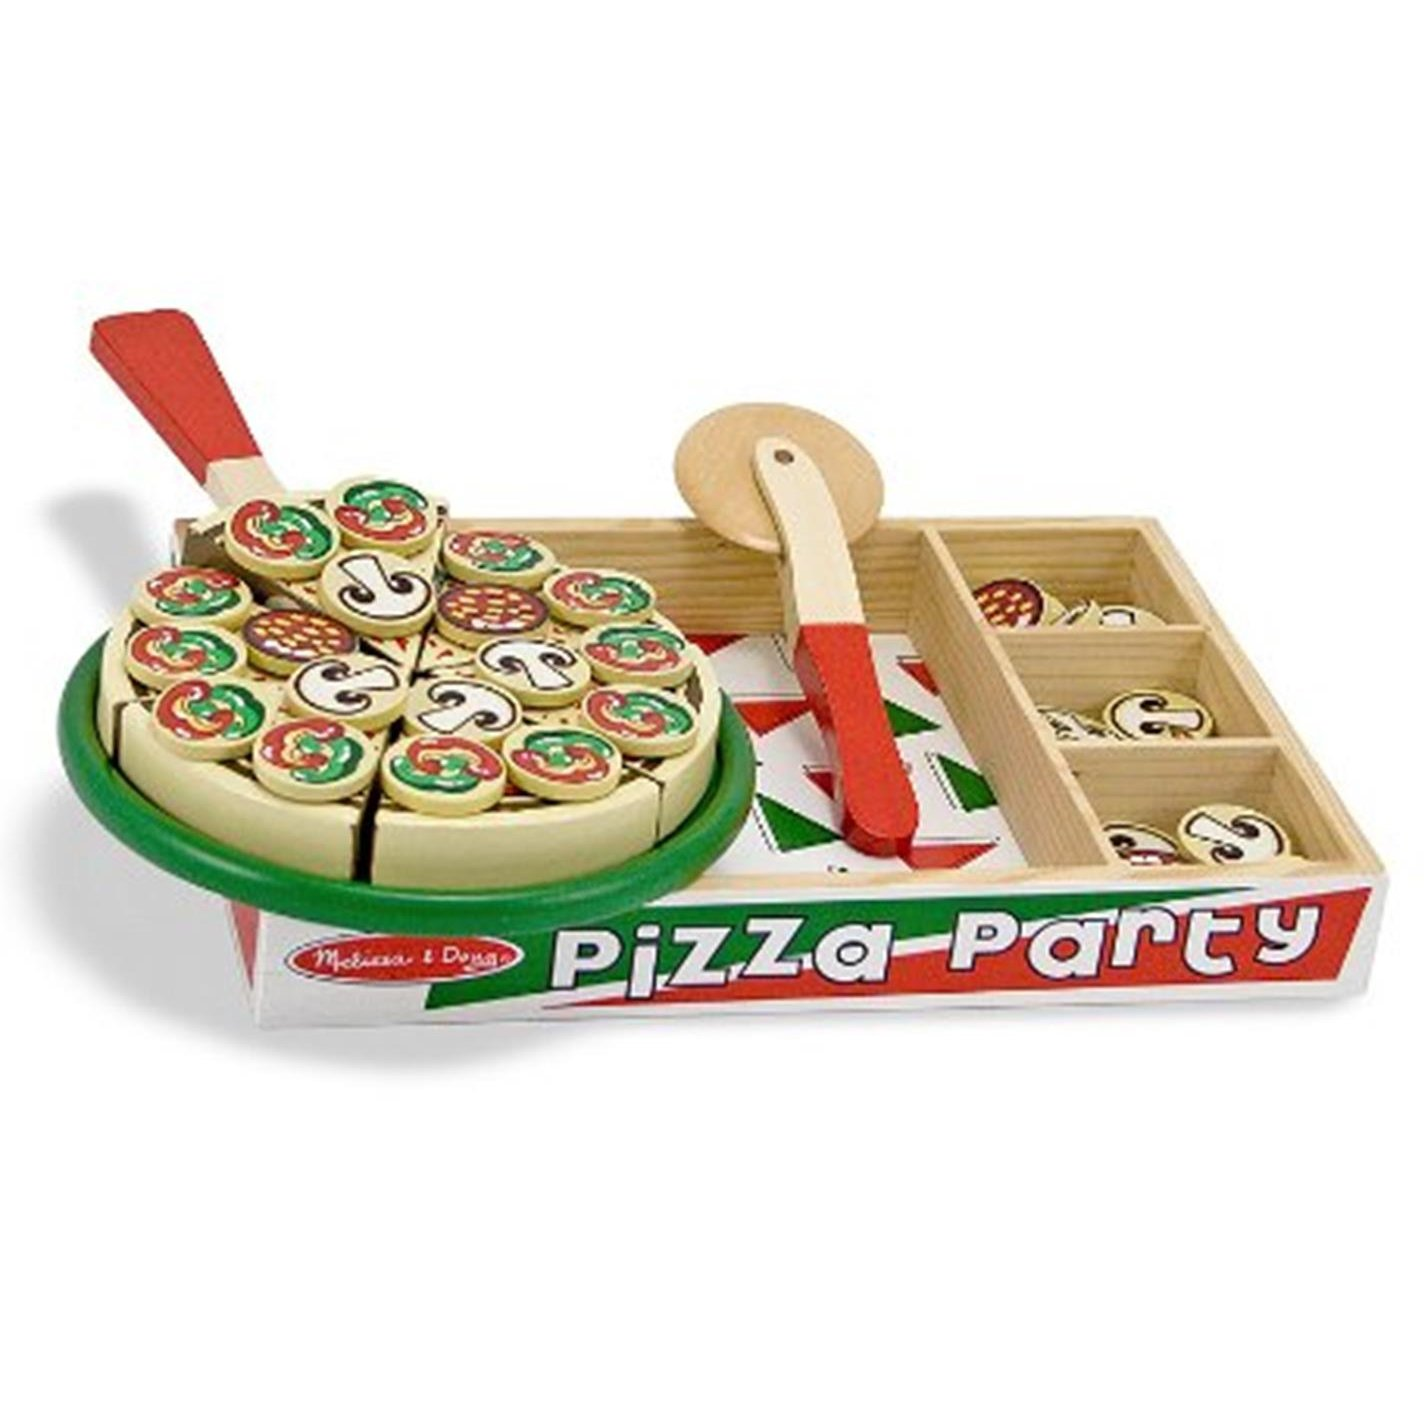 Wooden Pizza Party For Pretend Play For Children Amp Kids